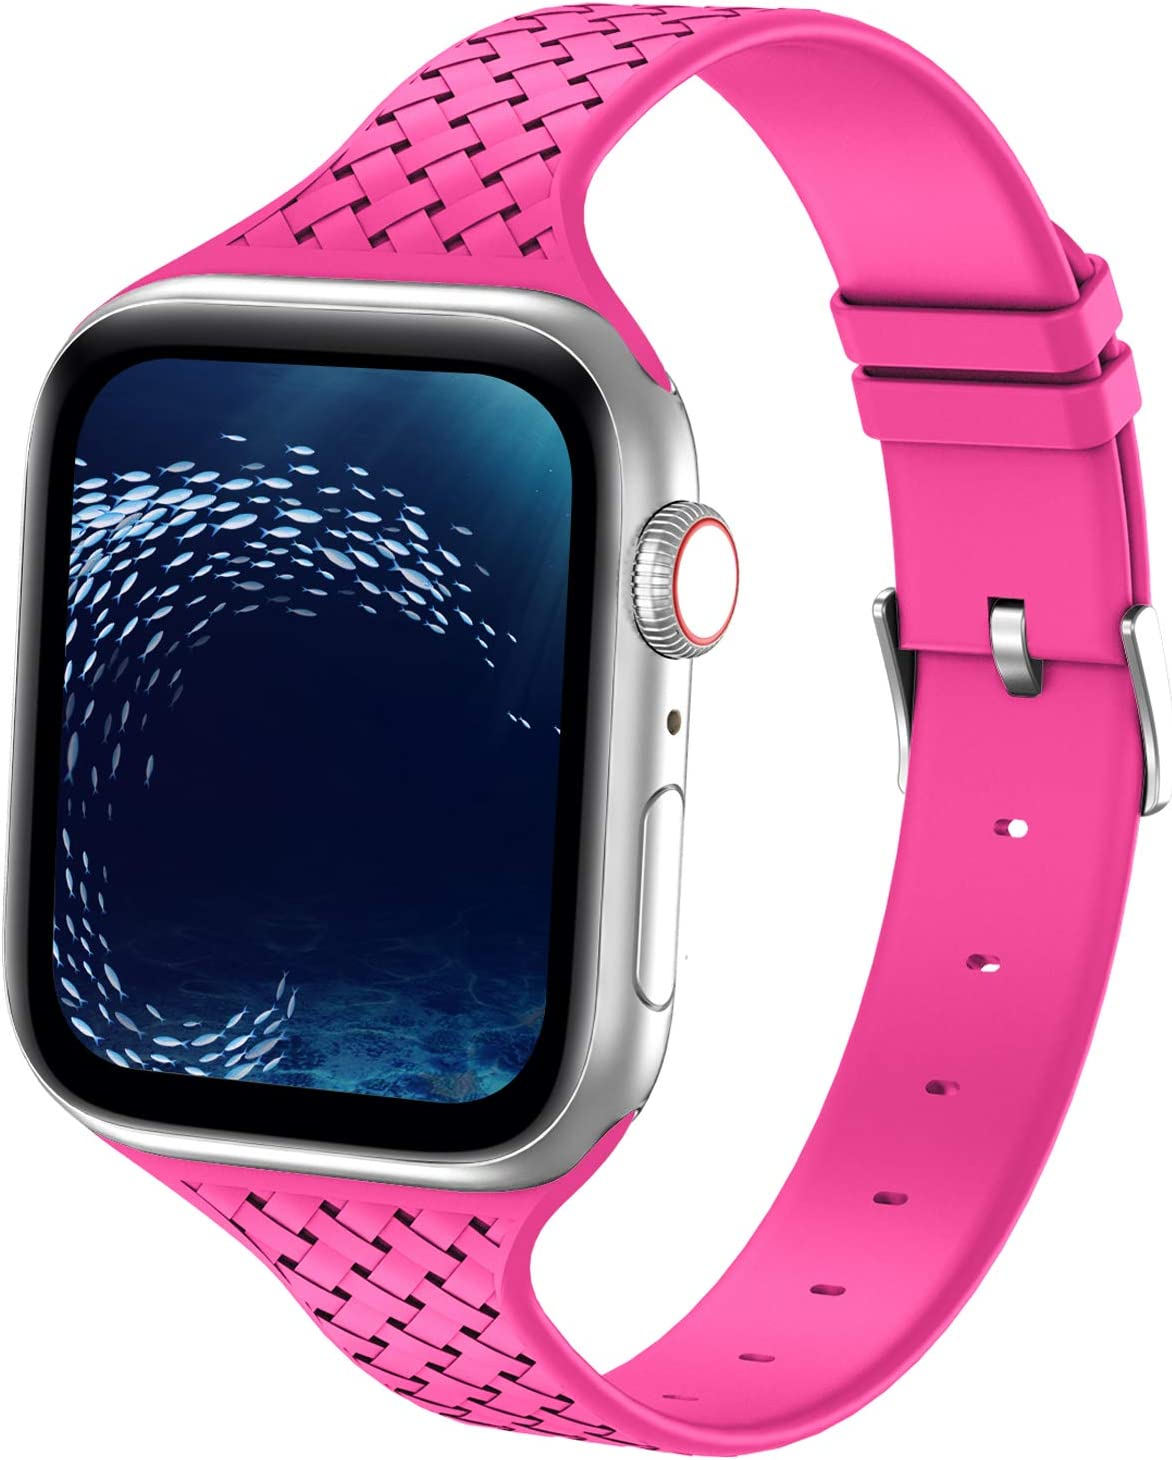 Bandiction Sport Band Compatible with Apple Watch Band 38mm 40mm, Silicone Sport Watch Band Slim Soft Weave Pattern Wristband Women Replacement Strap for iWatch Series 6 SE 5 4 3 2 1(Roseo)